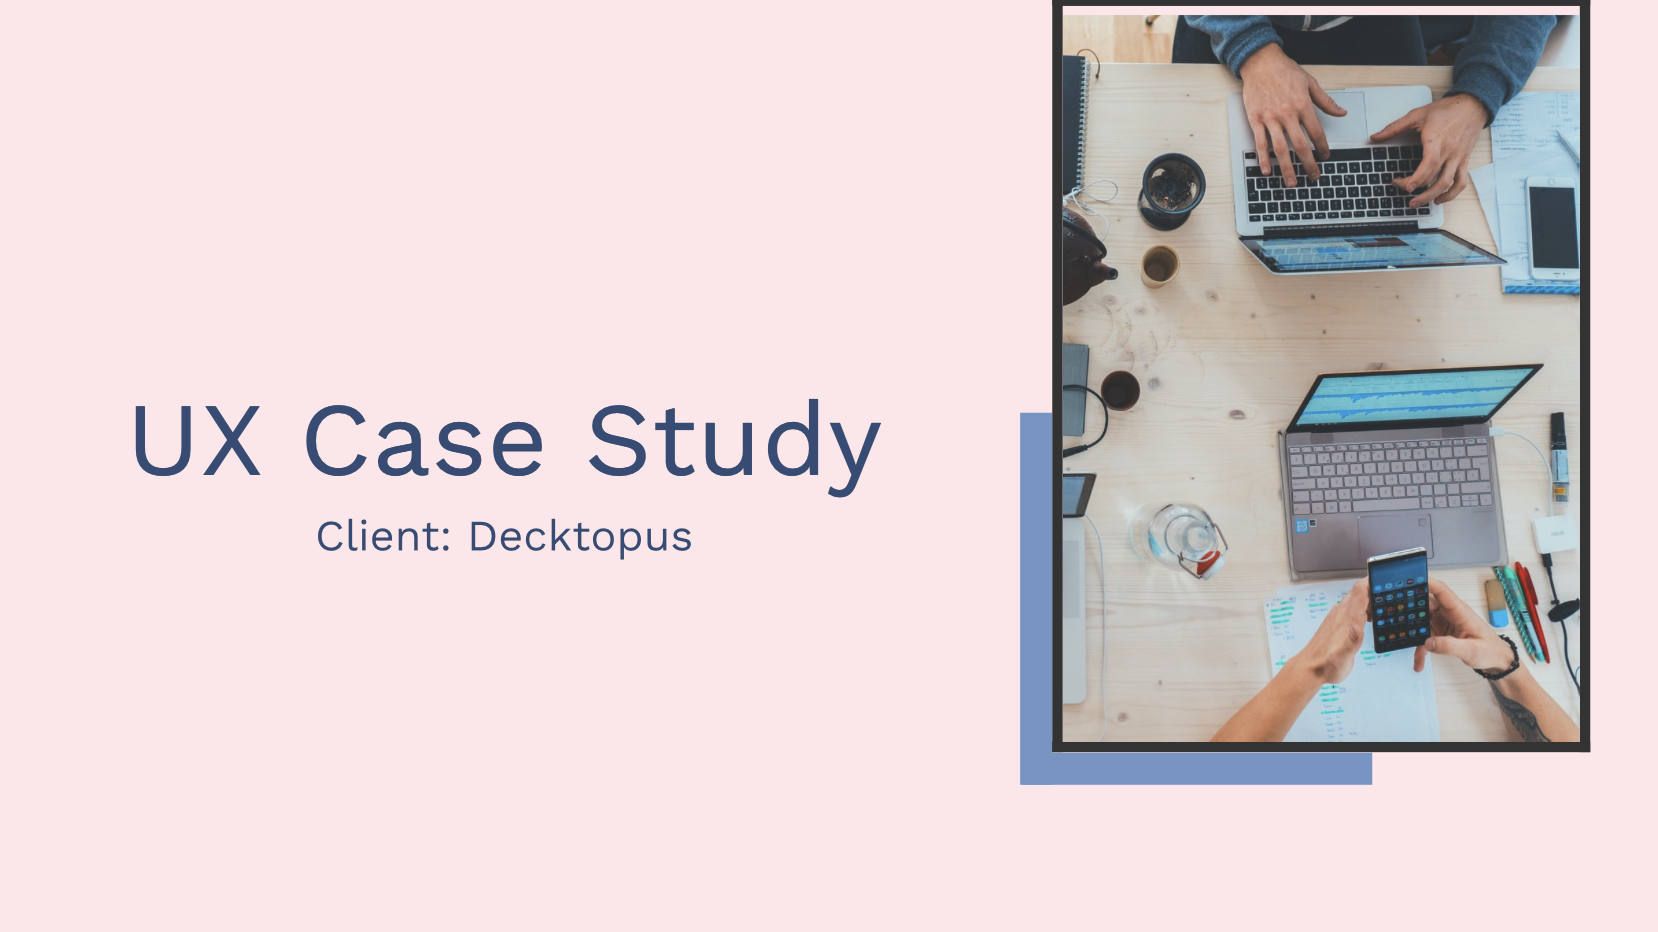 With UX Case Study Template on Decktopus you can create your portfolio quickly and easily. There are over 50 templates to choose from and they have a professional-looking layout that makes it easy for novices that don't know how to use Powerpoint or other complex softwares without feeling lost.